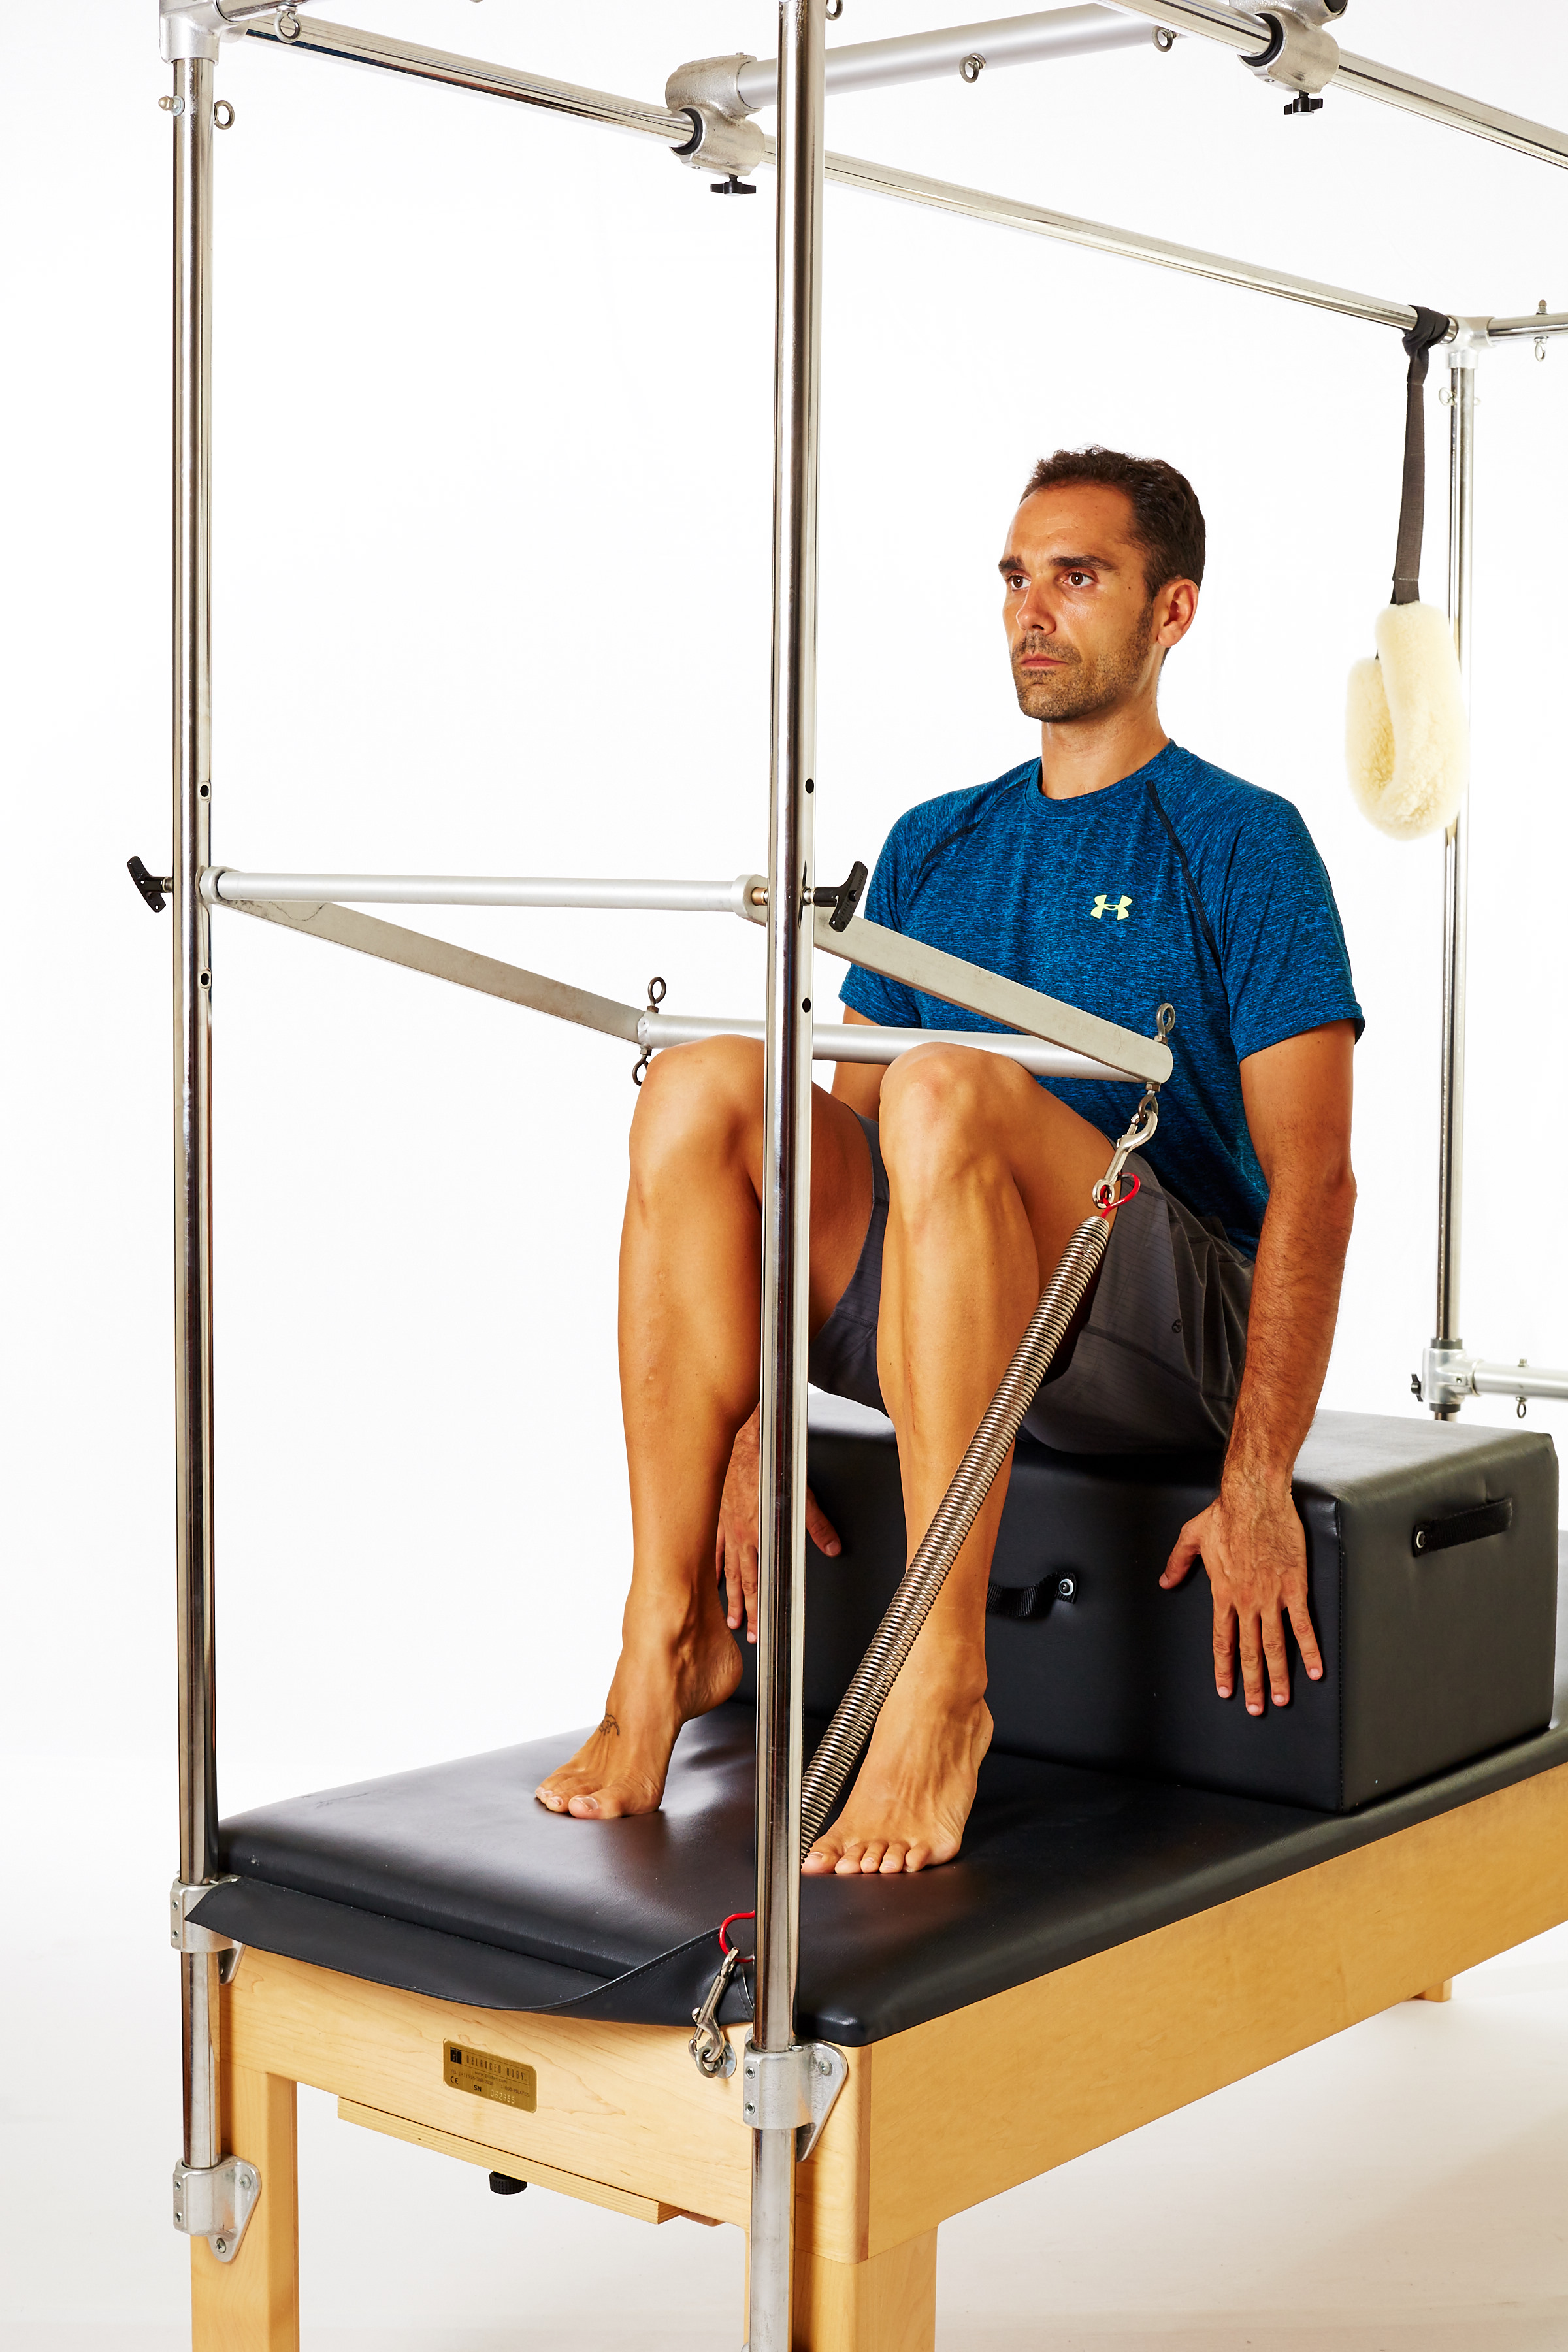 Achilles tendinopathy exercise using Cadillac and Long Box